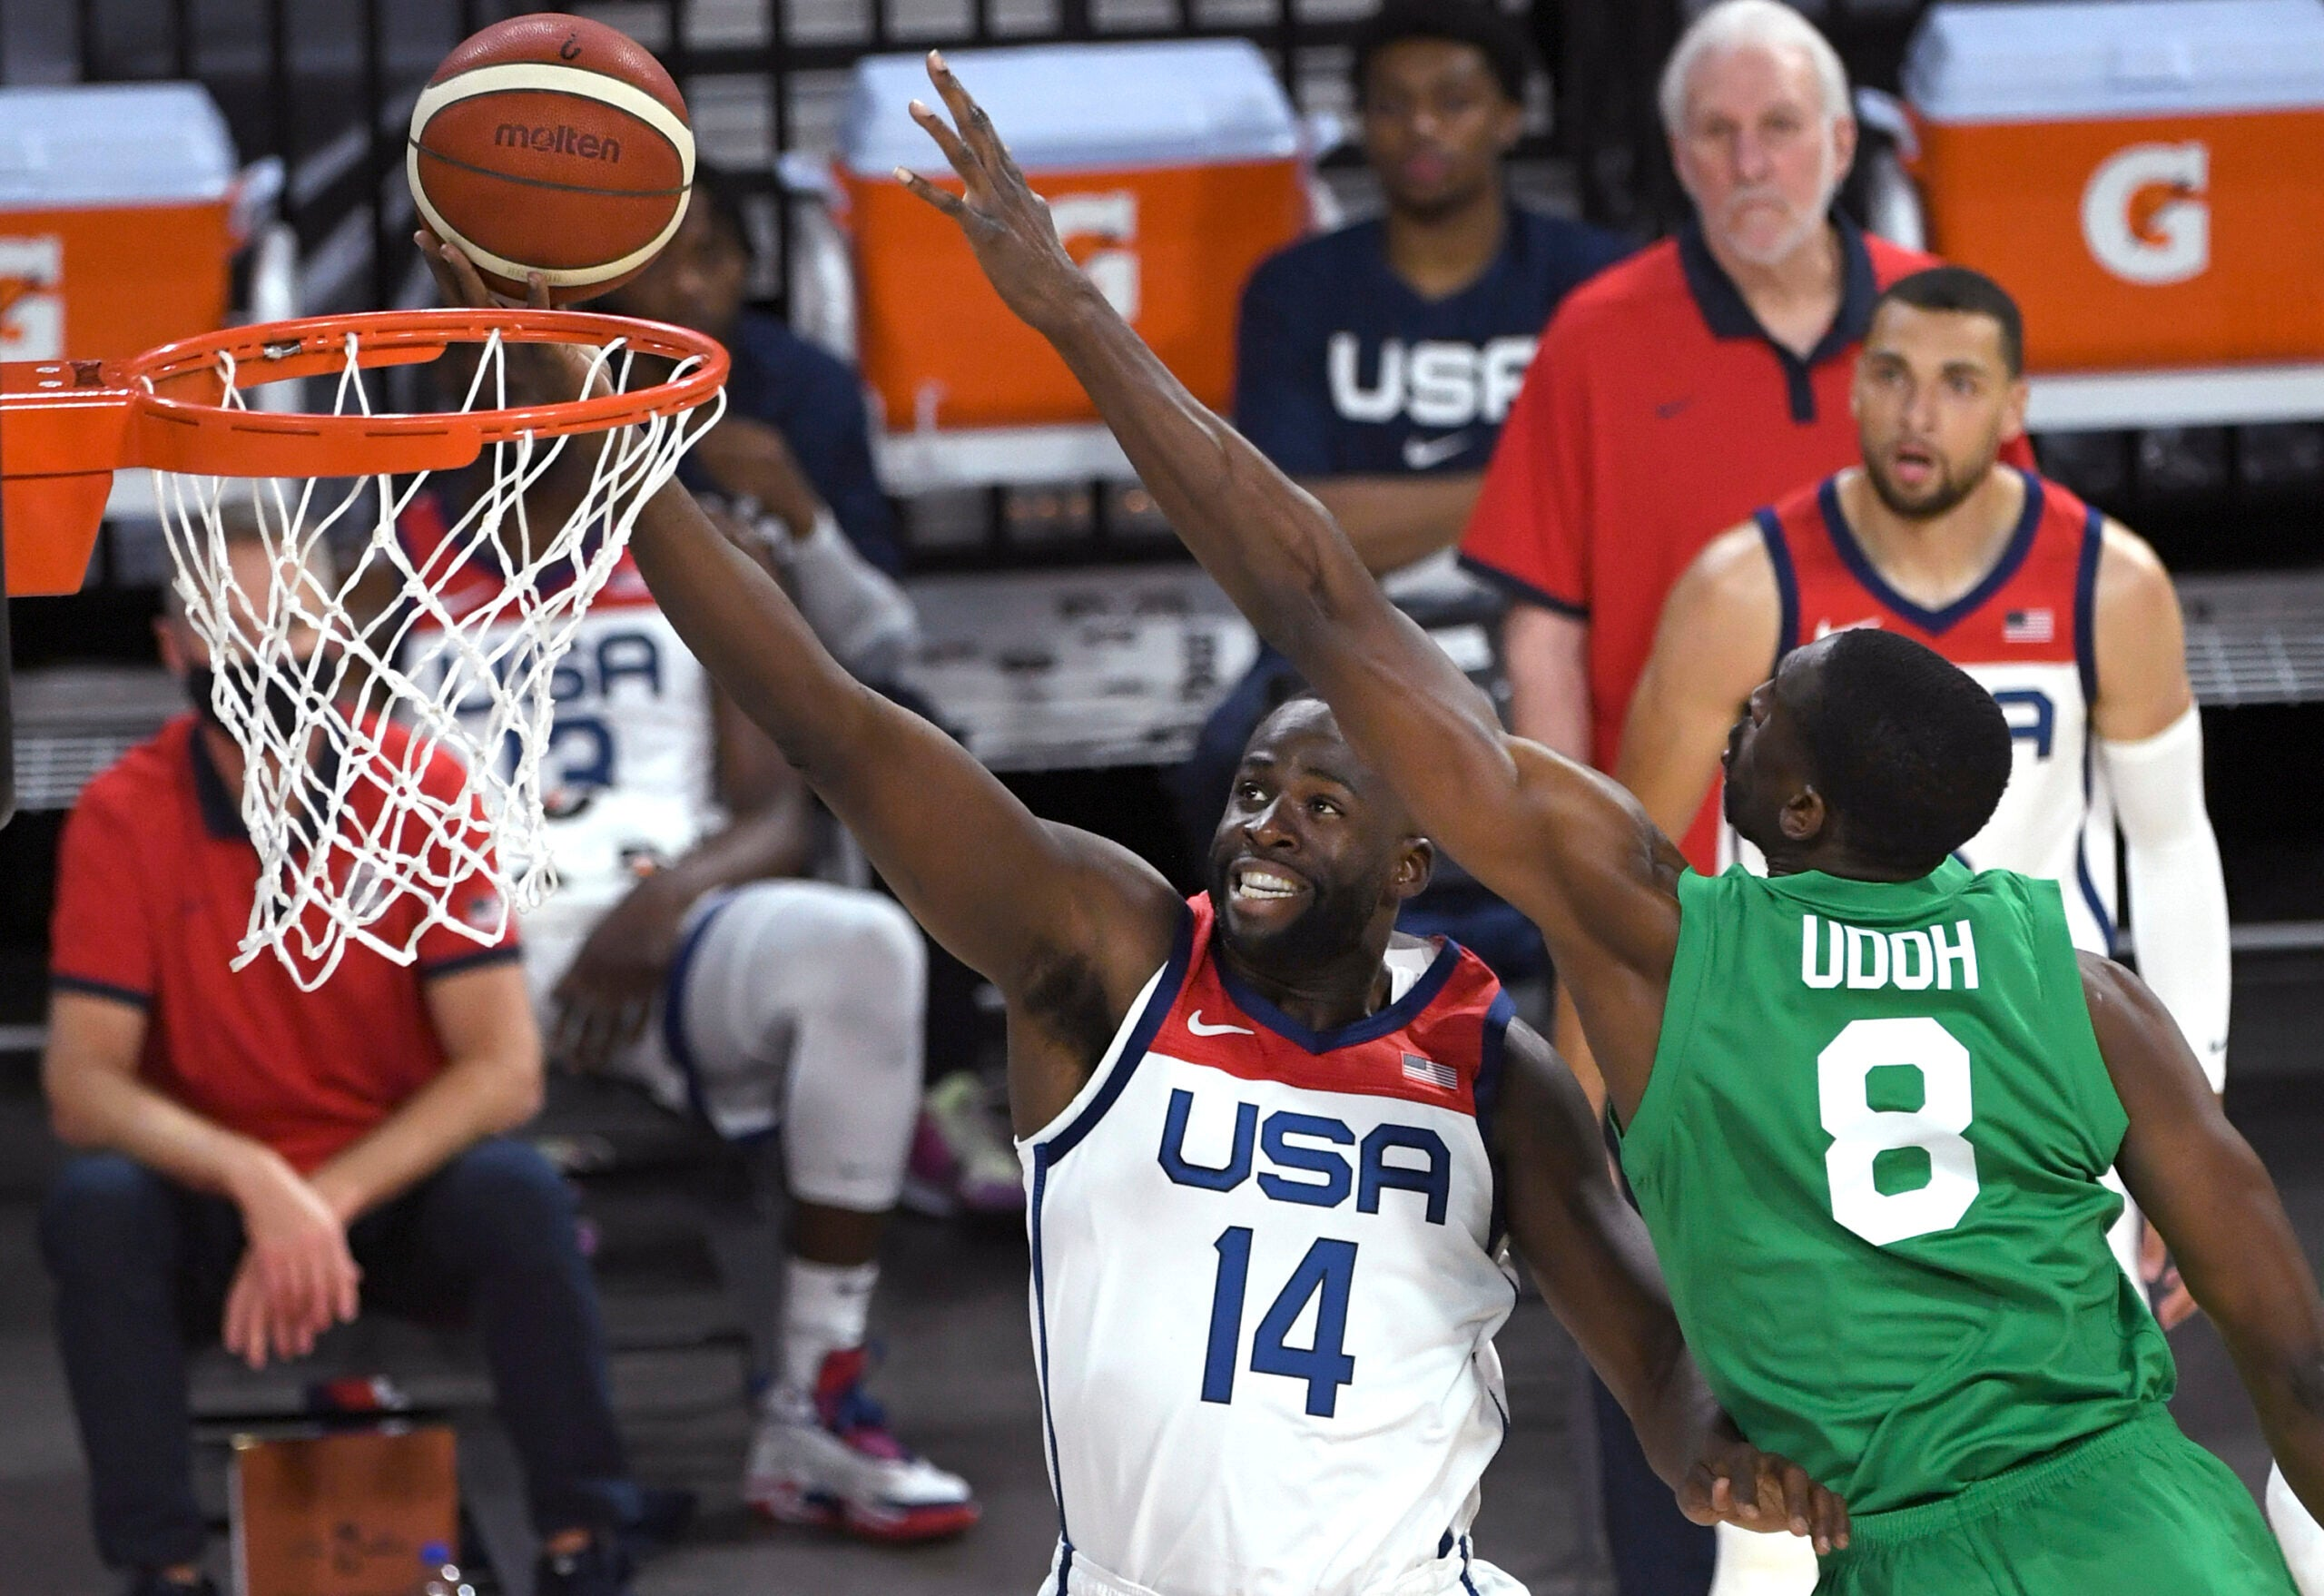 Nigeria Stuns U.S. Men's Basketball Team With 90-87 Upset Win in Olympic Exhibition Game